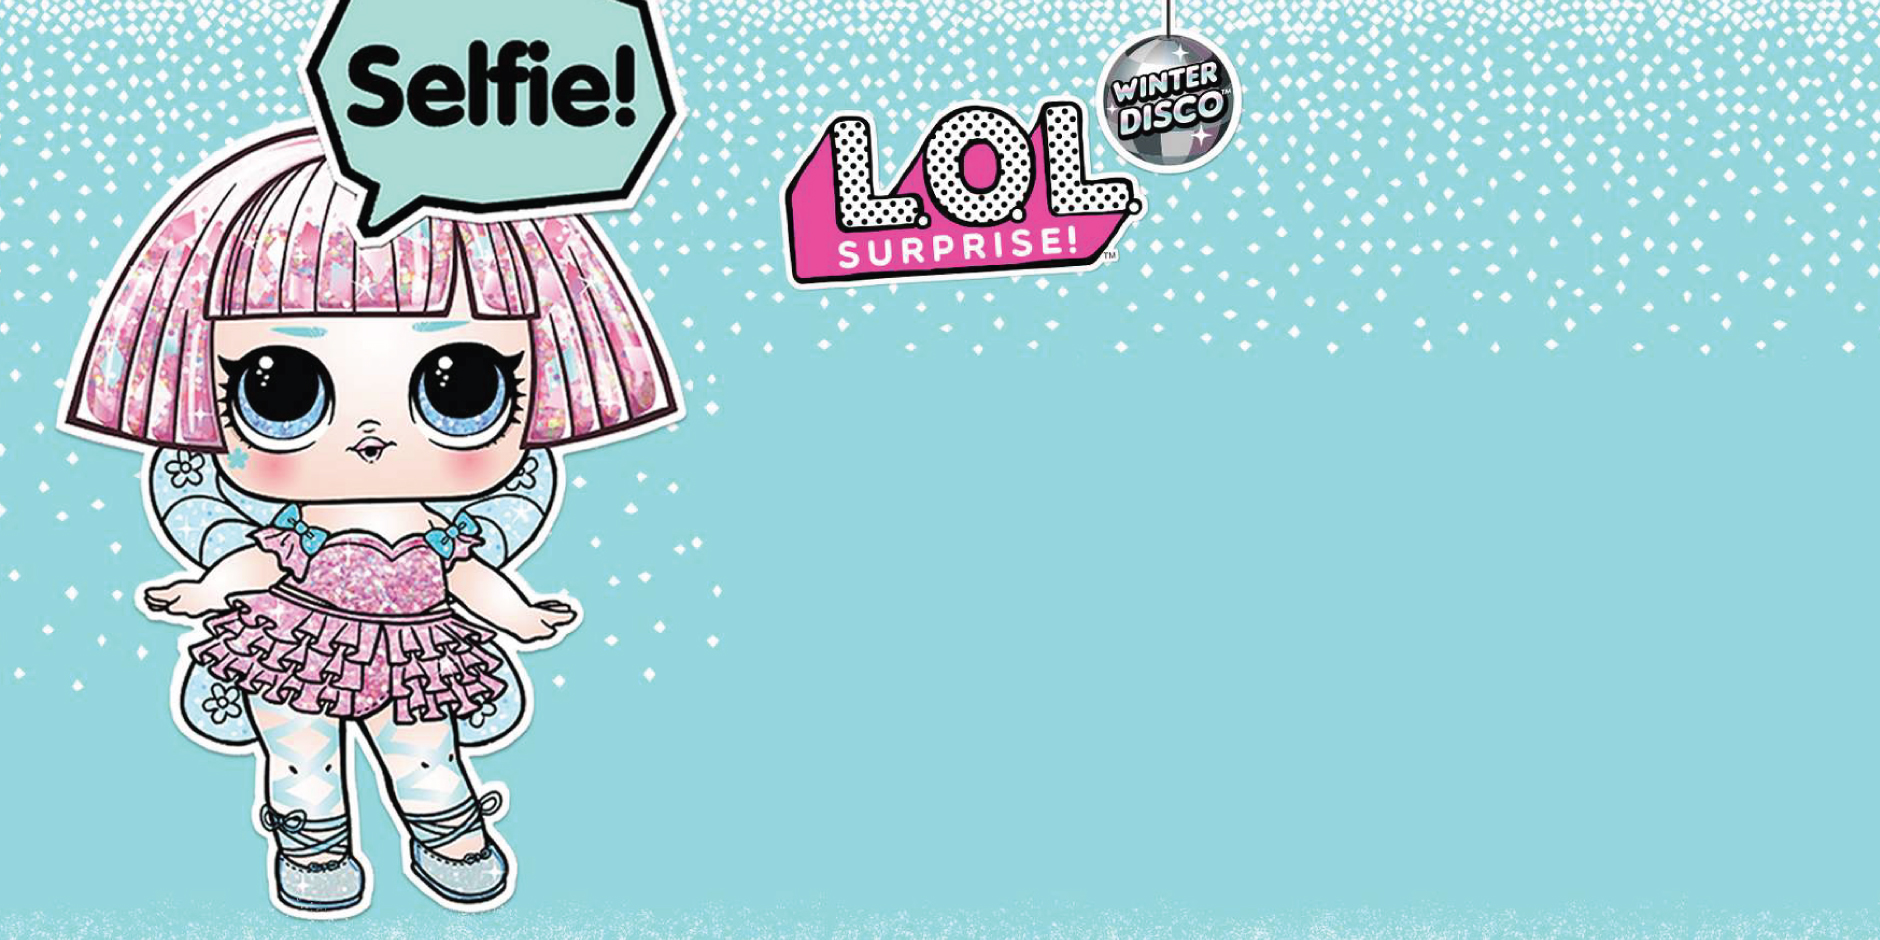 A character in a pink ballet outfit against an aqua background with the L.O.L. Surprise! logo